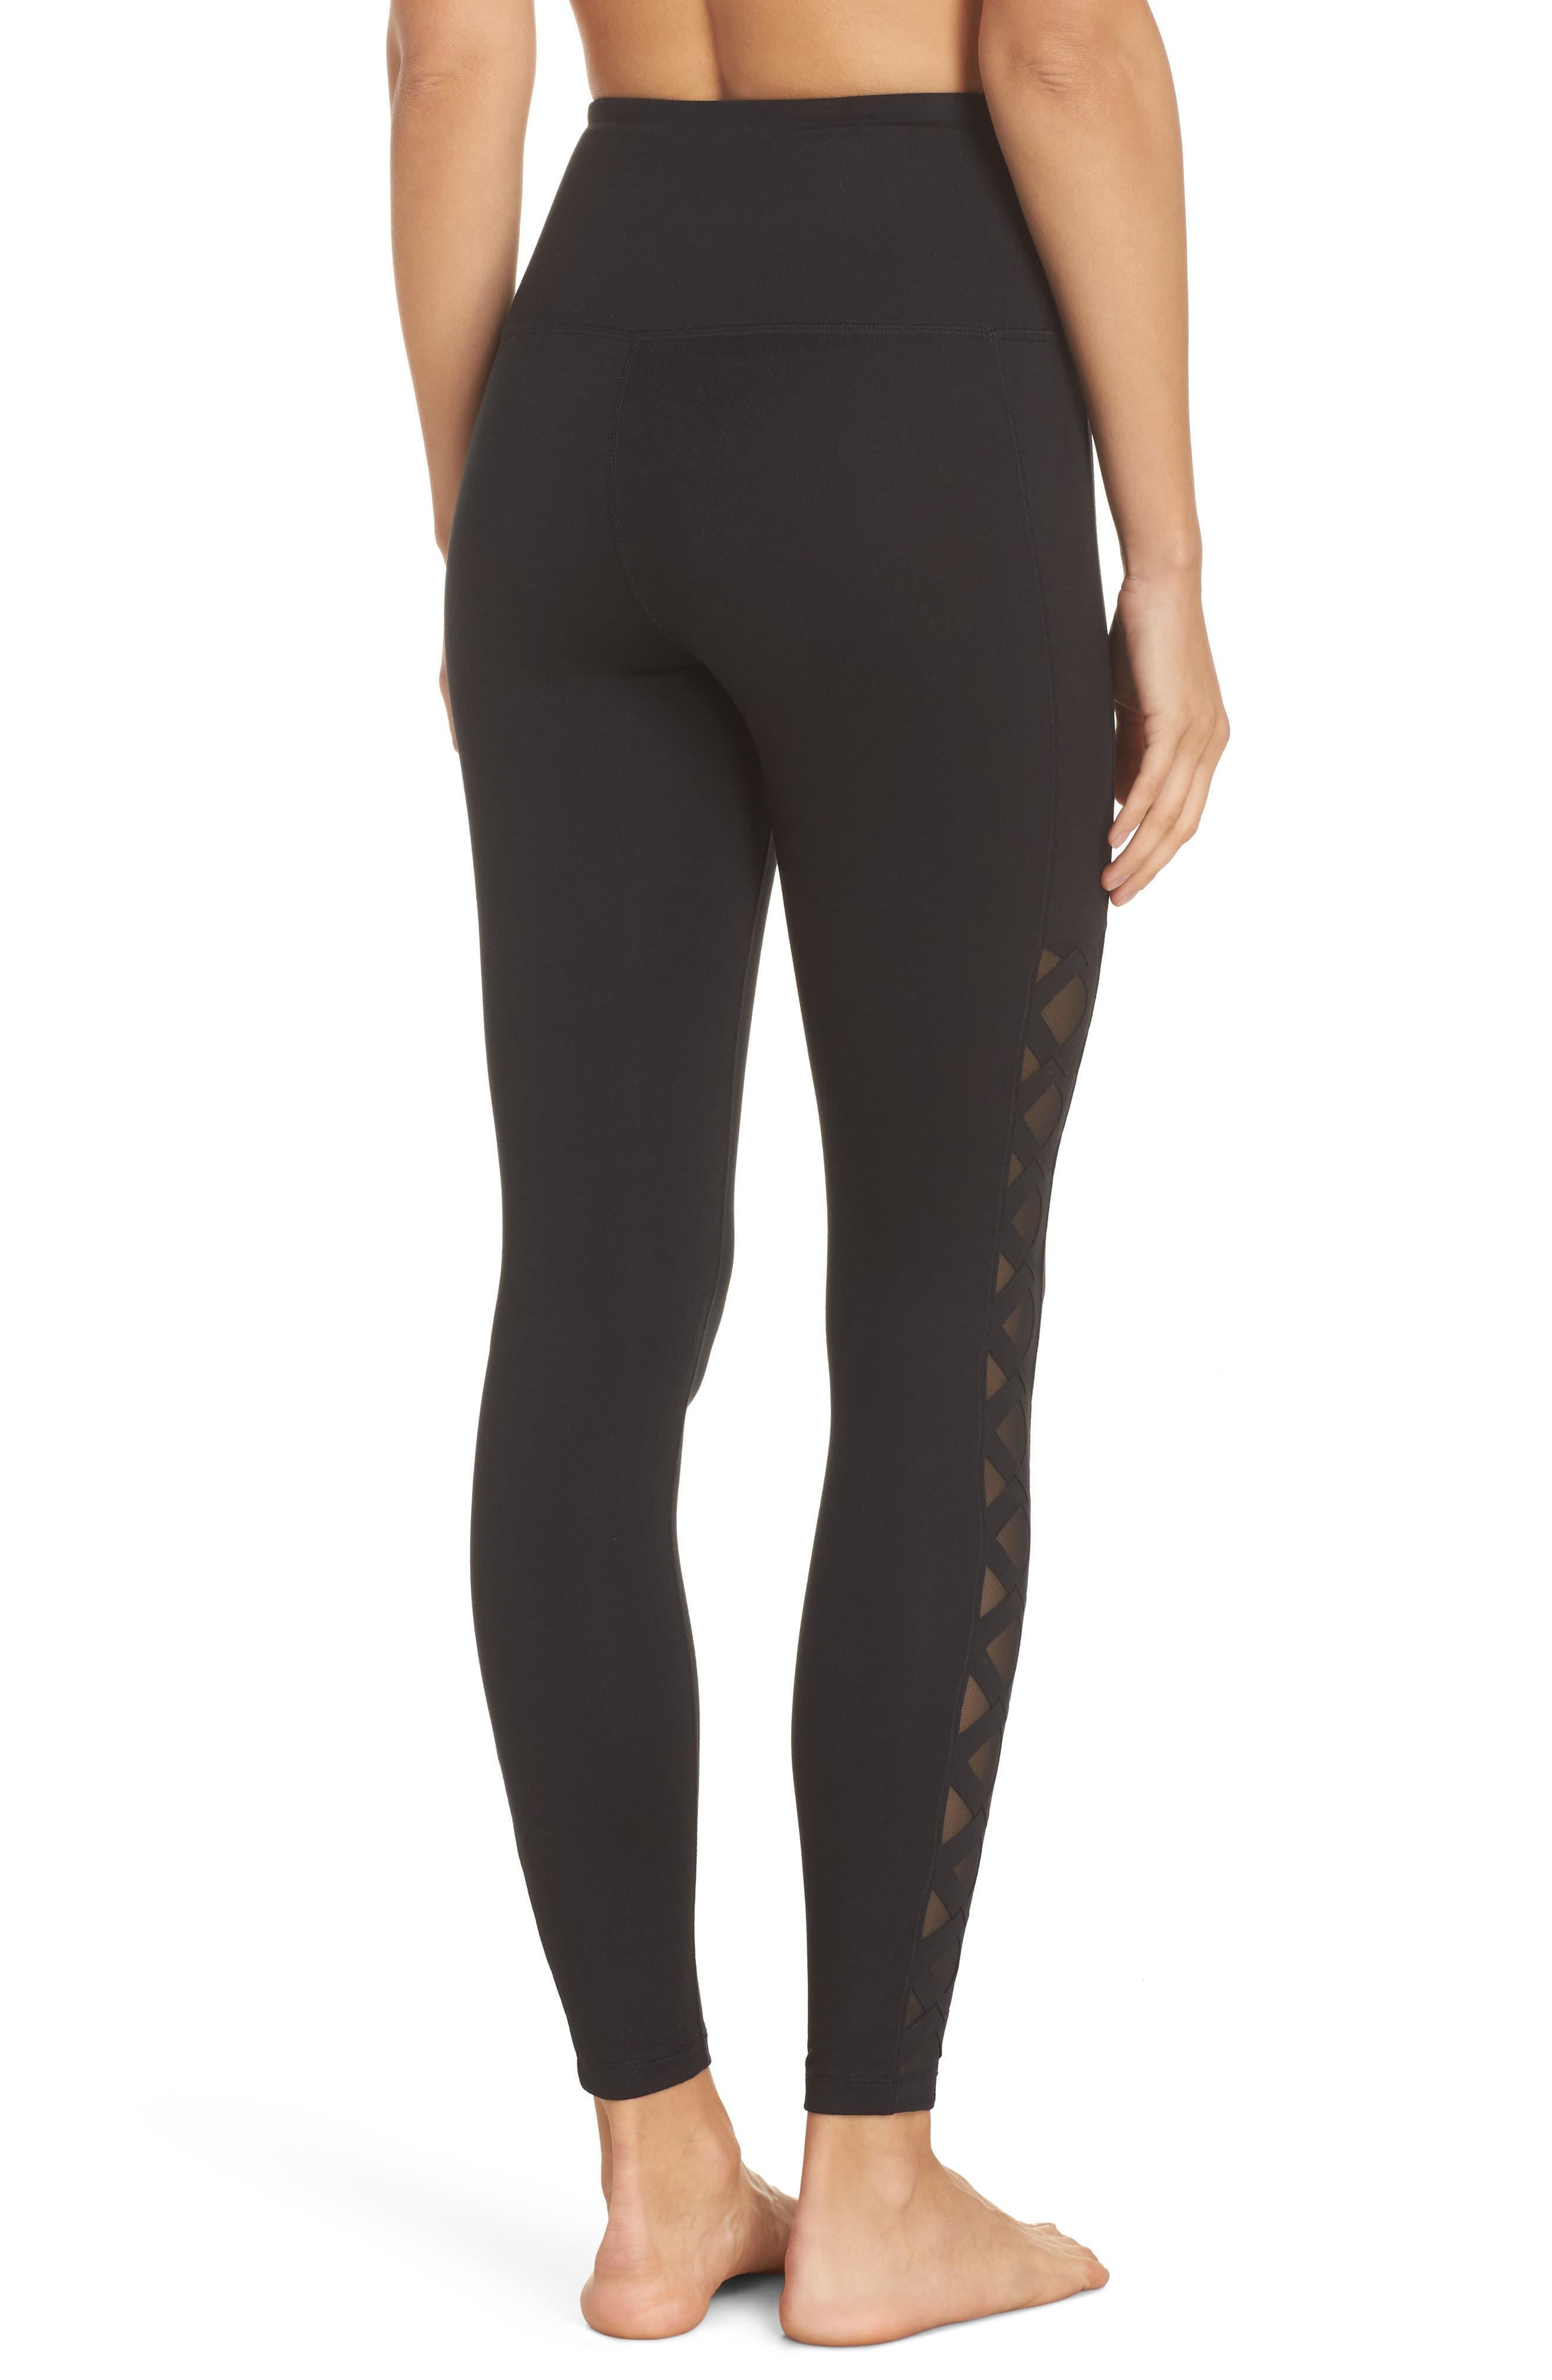 Laser Cut High Waist Leggings,                             Alternate thumbnail 2, color,